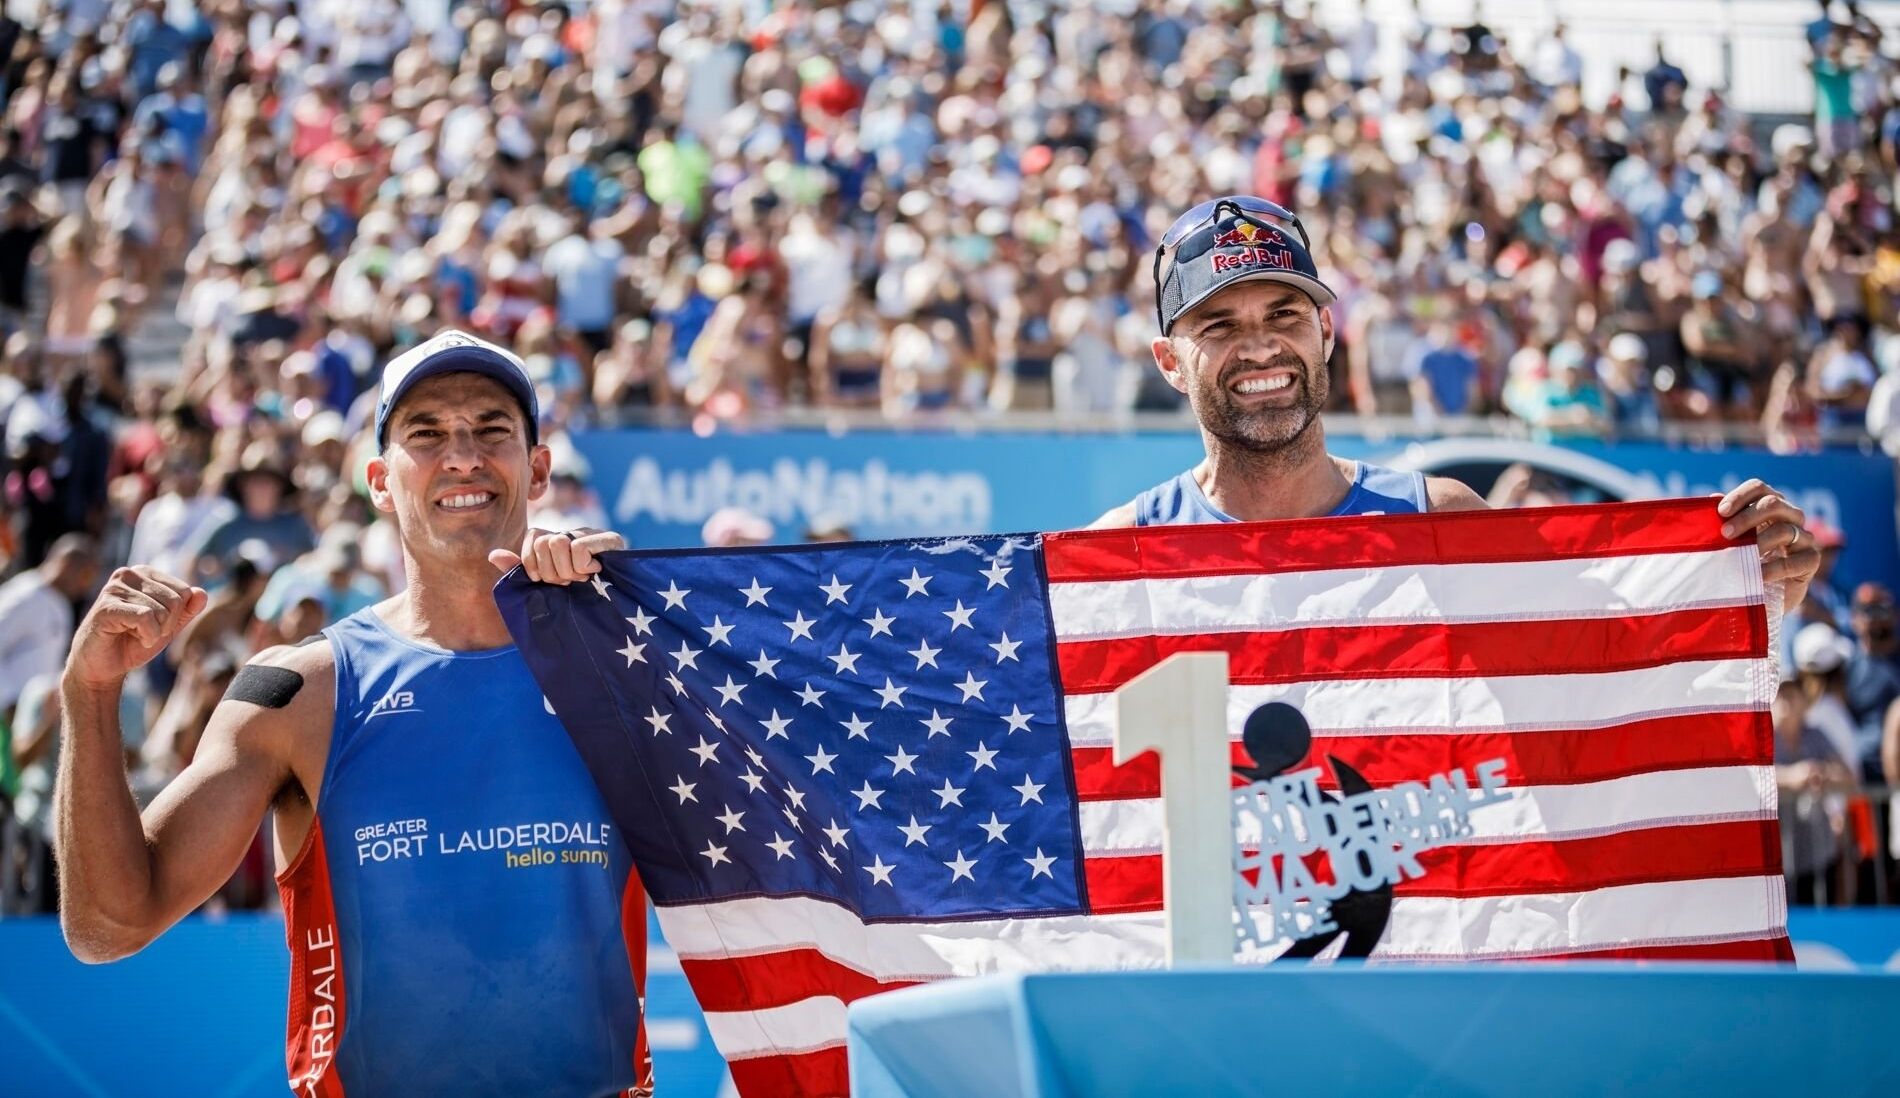 Fort Lauderdale Champions at last: Nick Lucena (left) and Phil Dalhausser